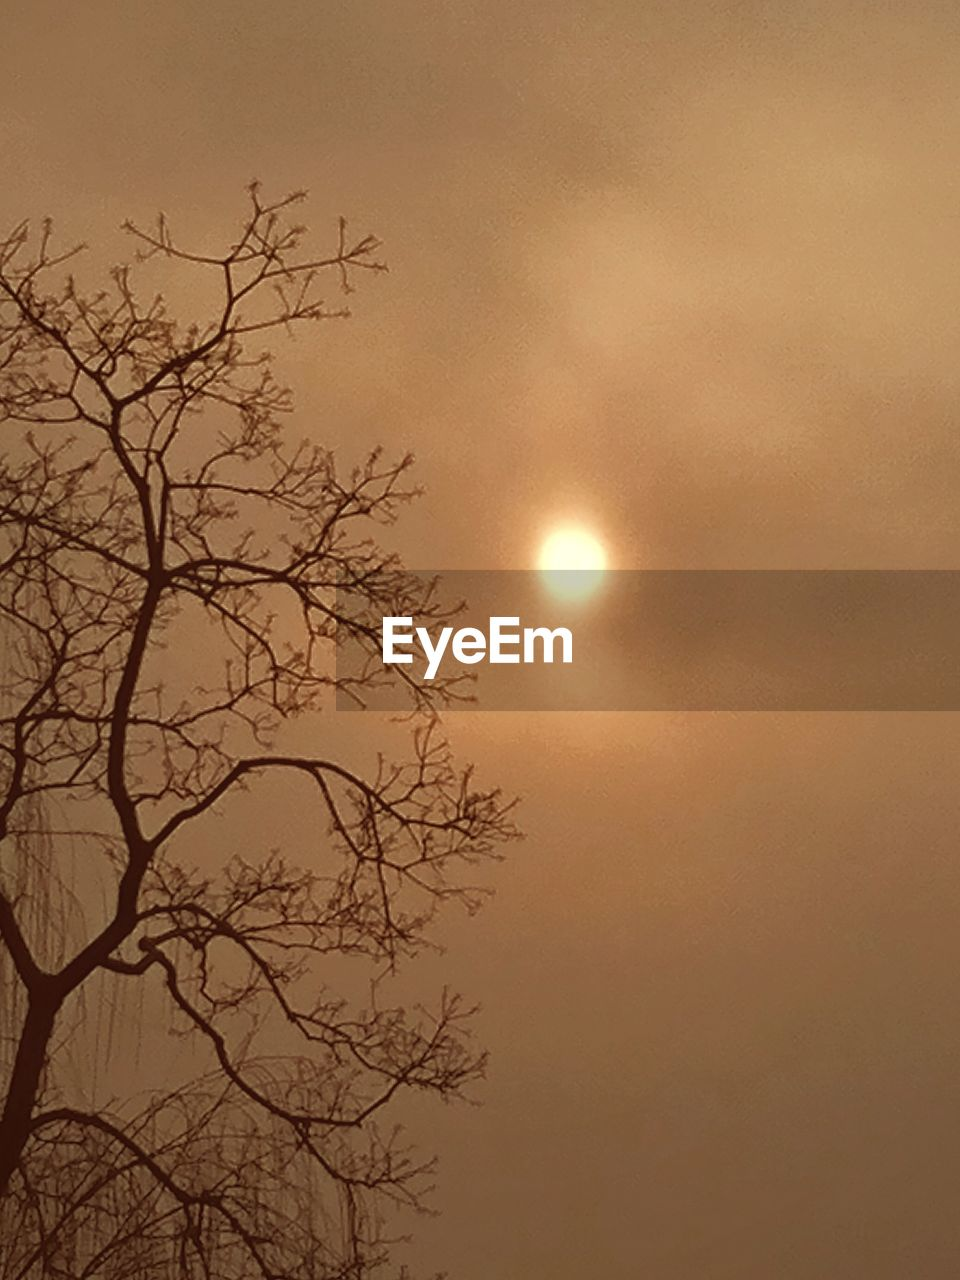 nature, sunset, sun, beauty in nature, sky, outdoors, tranquility, tree, low angle view, bare tree, no people, branch, tranquil scene, scenics, moon, day